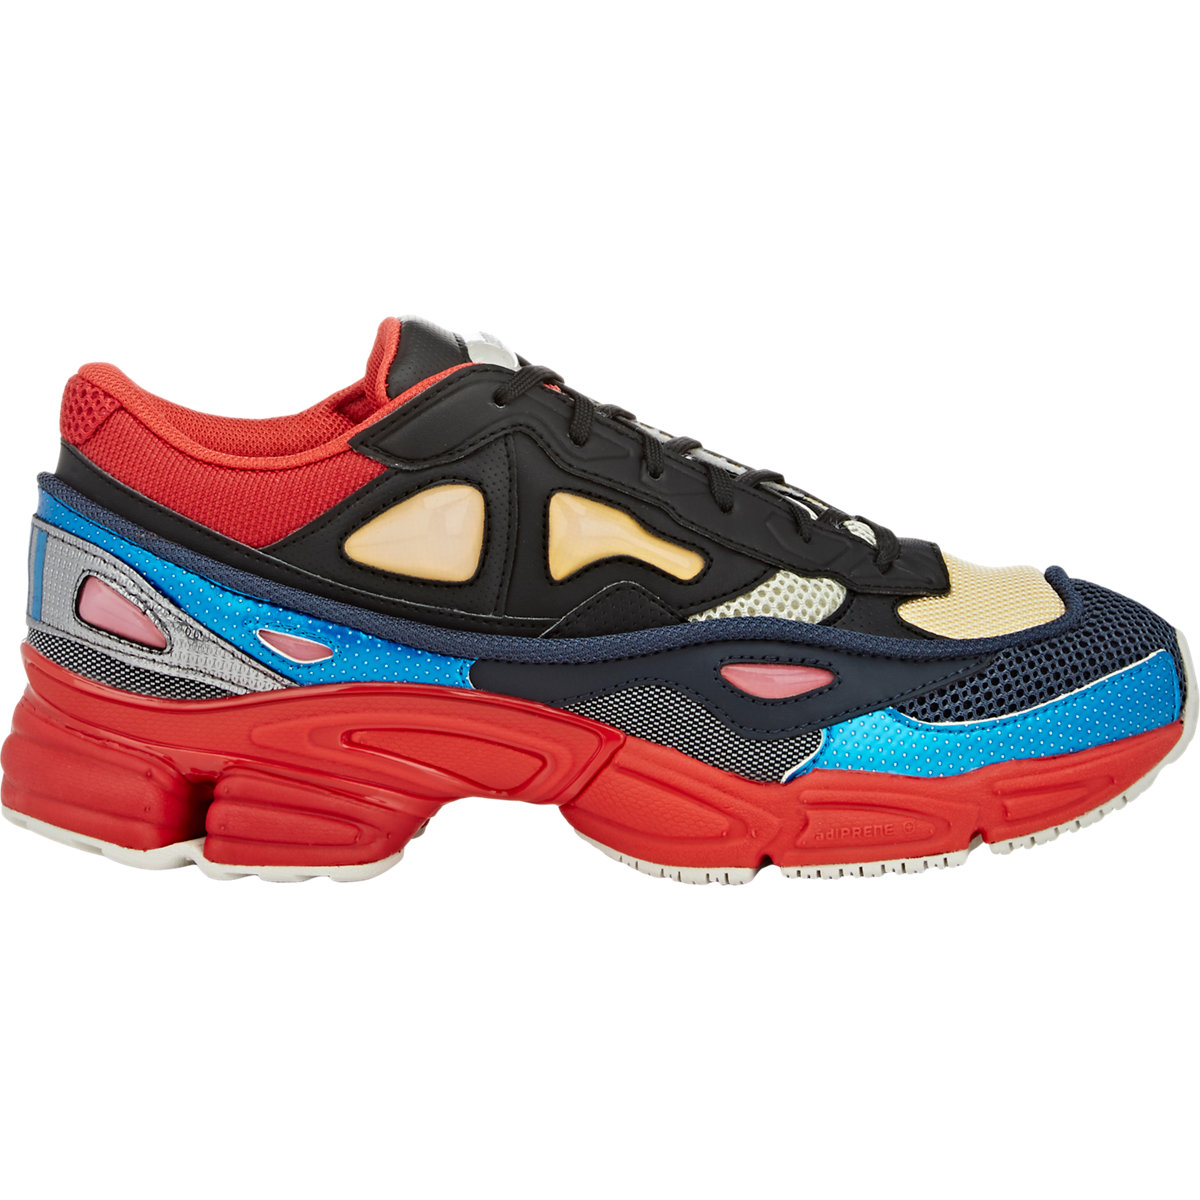 adidas by raf simons ozweego 2 sneakers in red for men lyst. Black Bedroom Furniture Sets. Home Design Ideas